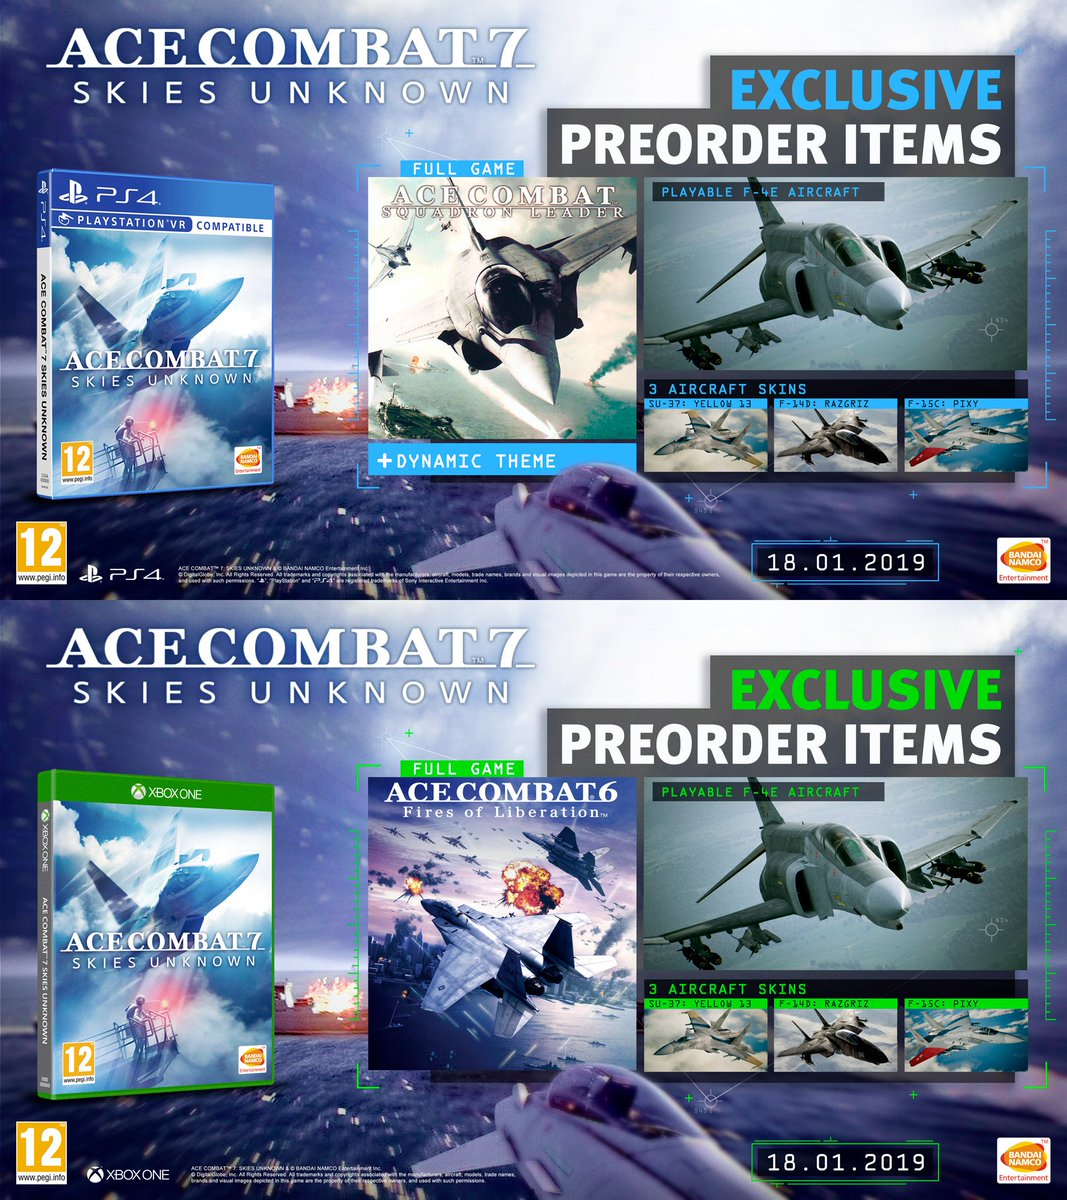 Attention Aces! 📣 This week-end is your last chance to receive exclusive pre-order items with ACE COMBAT 7: SKIES UNKNOWN digital orders on PS4 and XB1. #ACECOMBAT